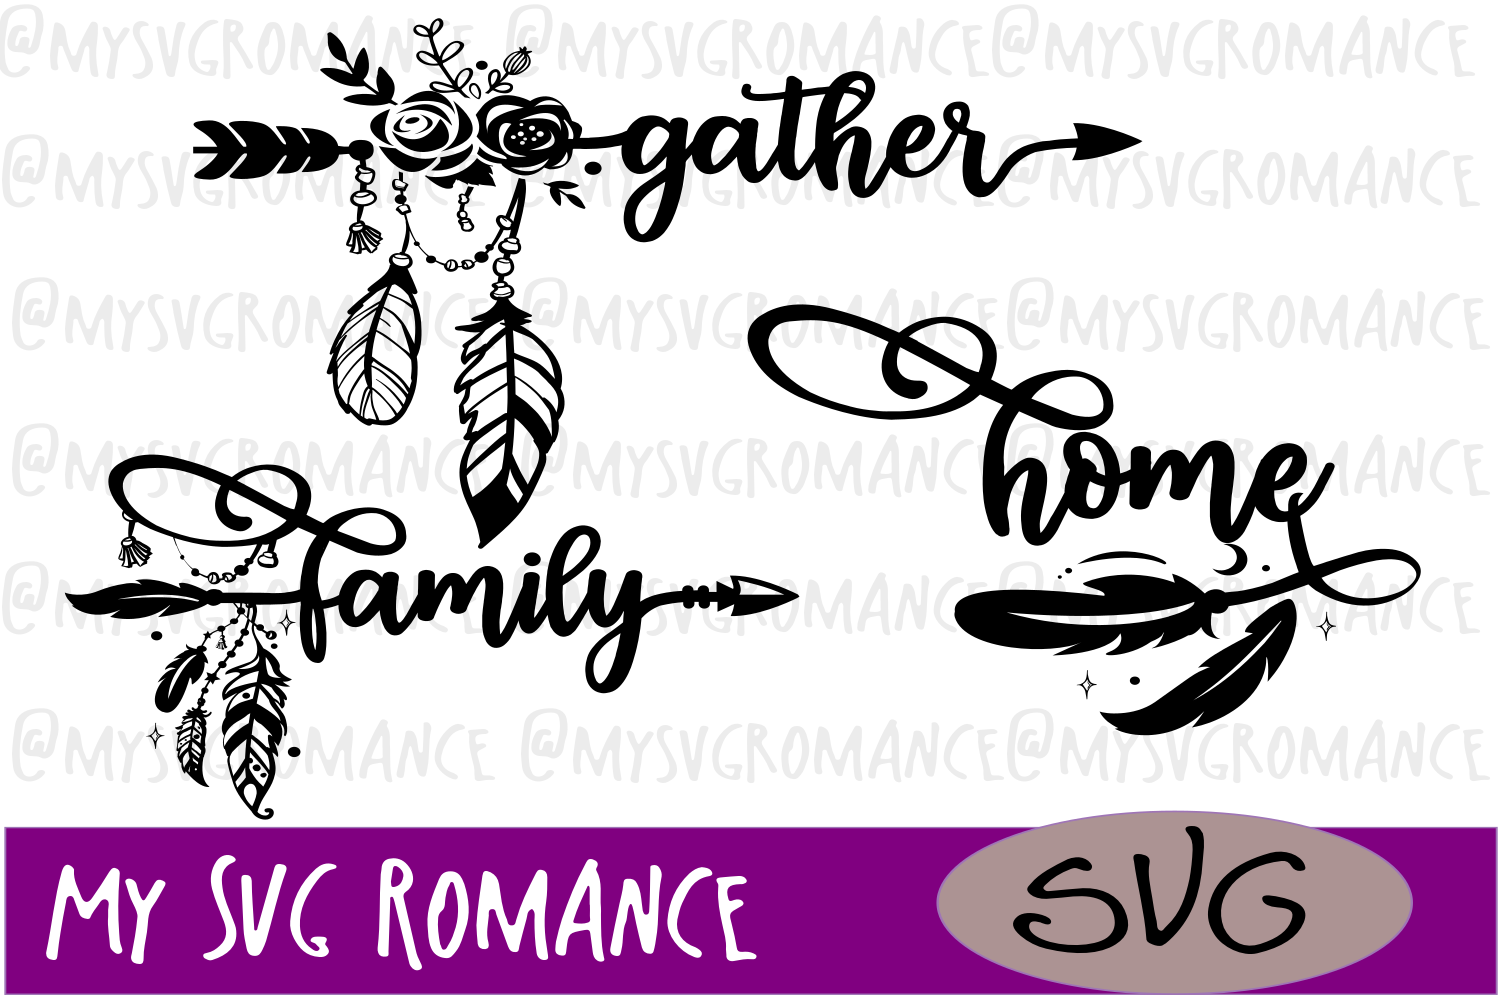 Gather - Family - Home - Arrows SVG Set example image 1